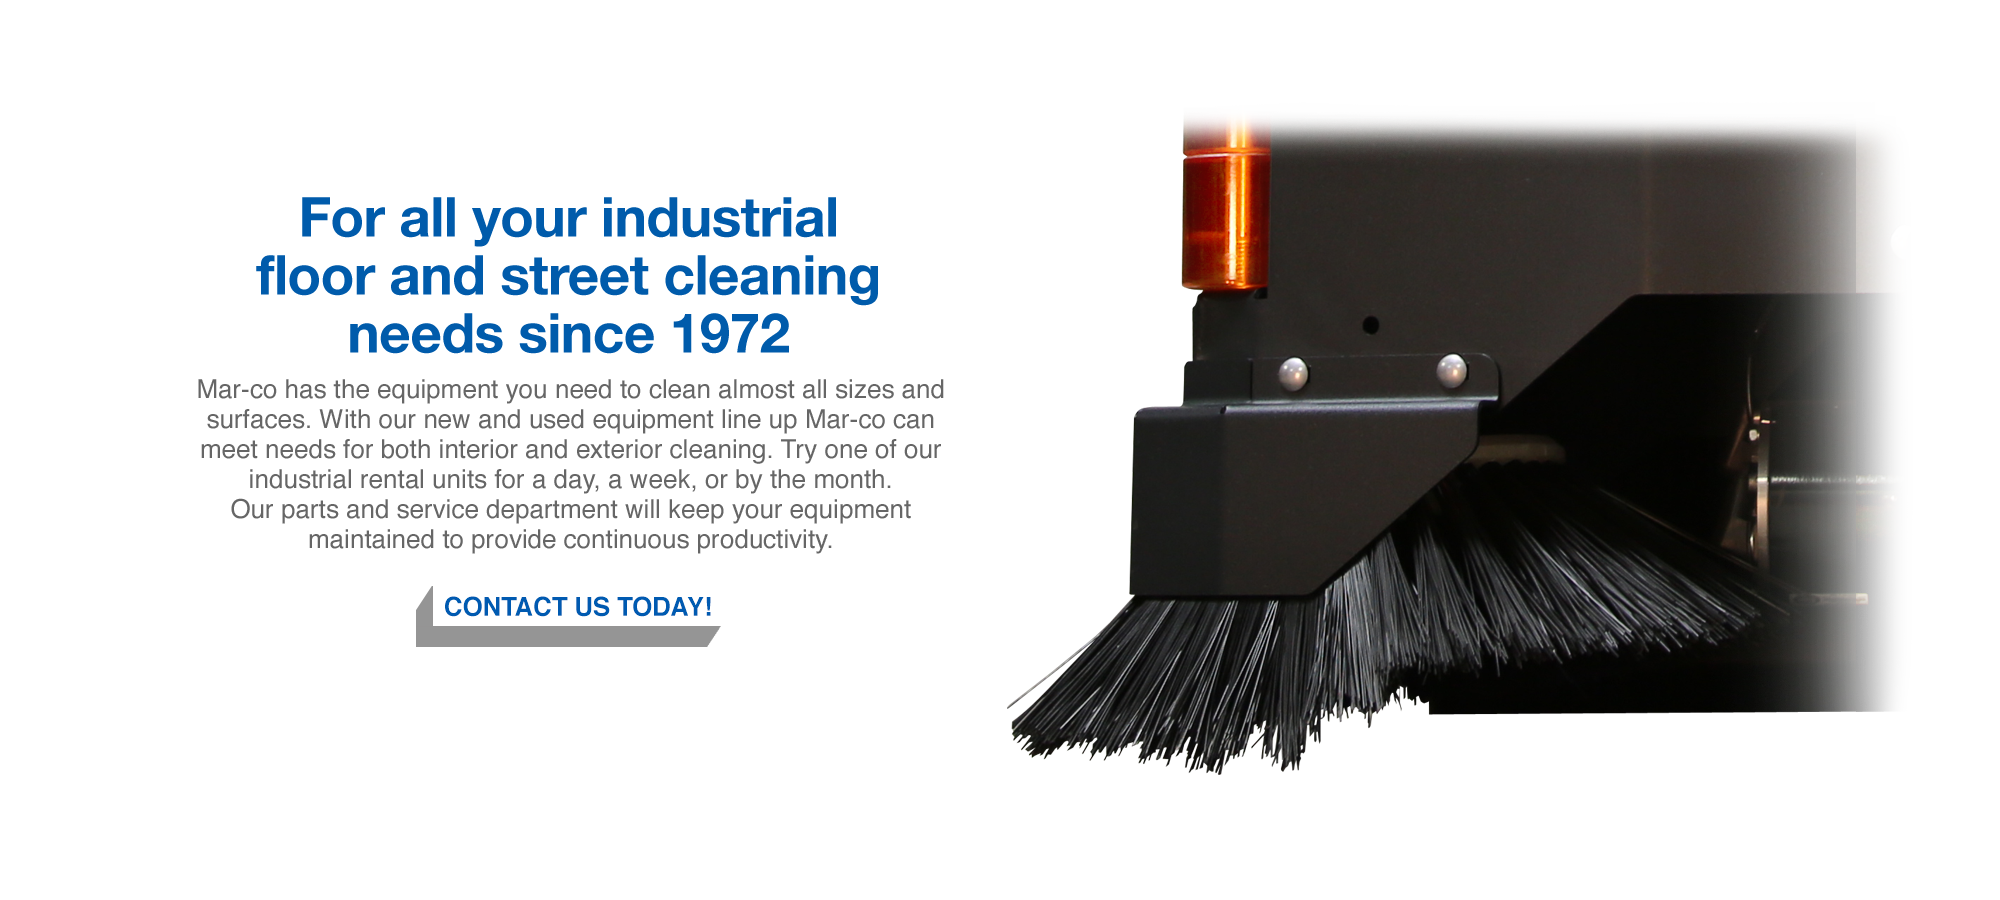 For all your industrial floor and street cleaning needs since 1972